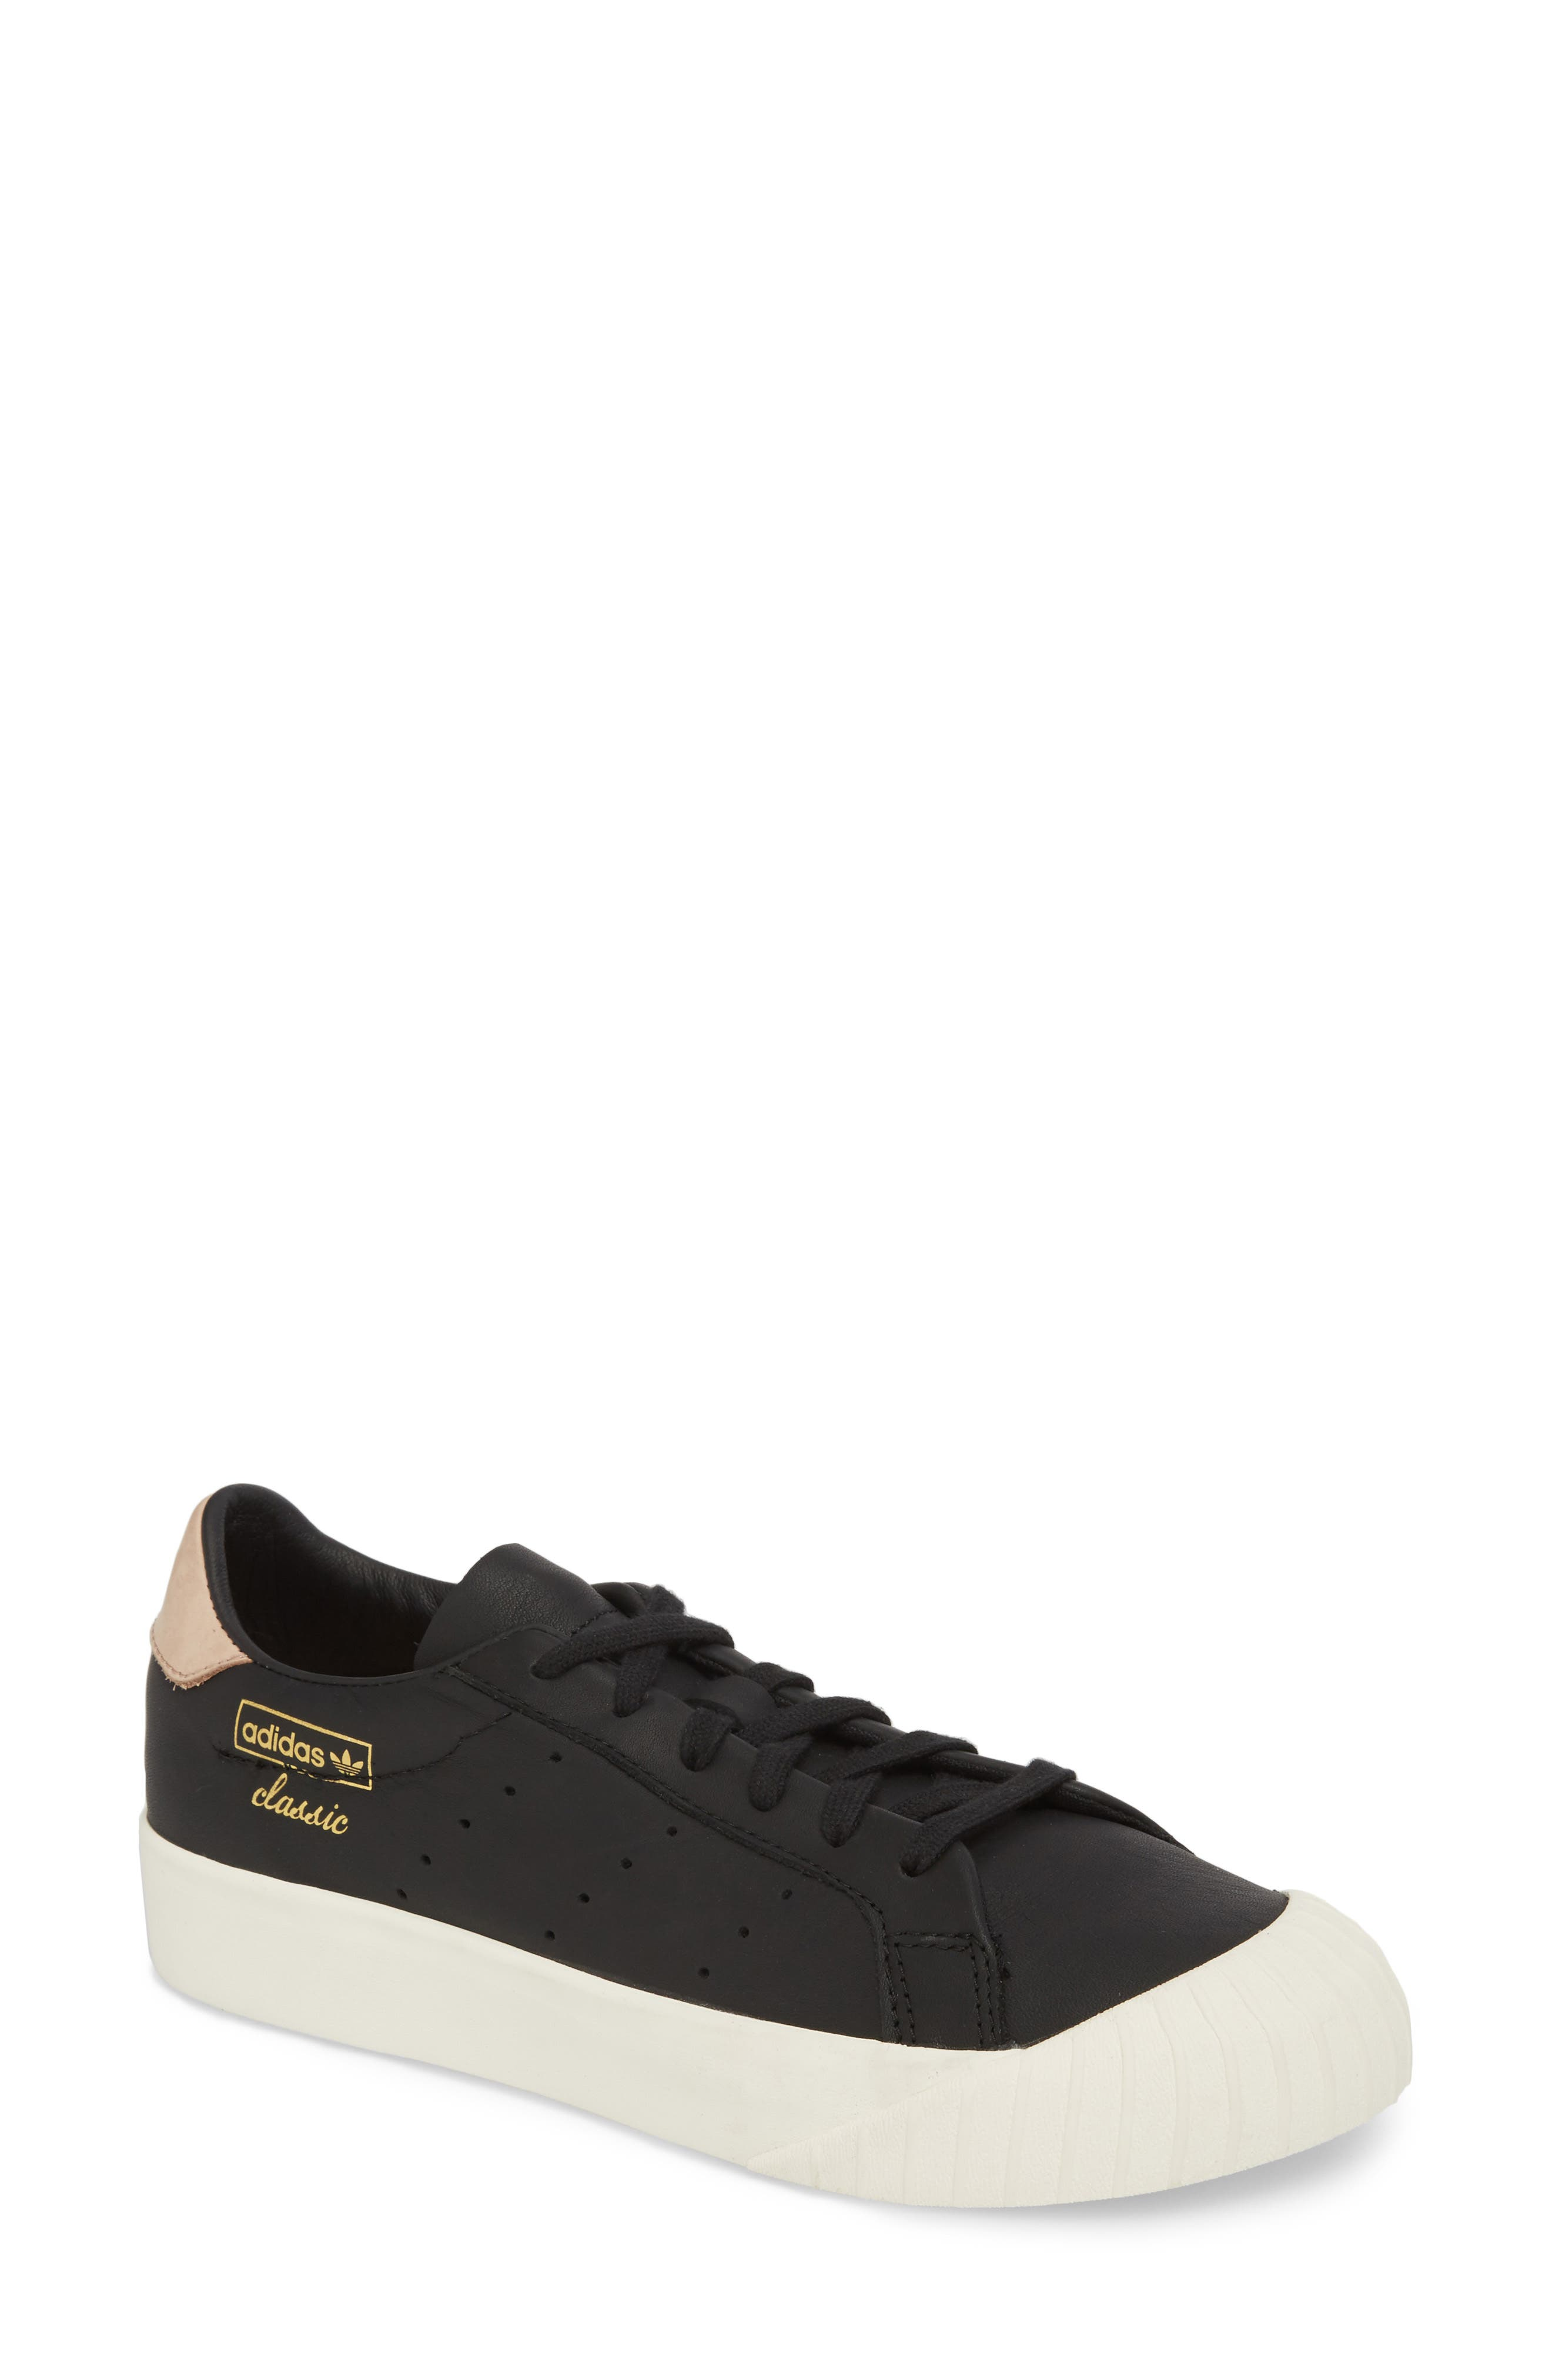 Everyn Perforated Low Top Sneaker,                         Main,                         color, 001